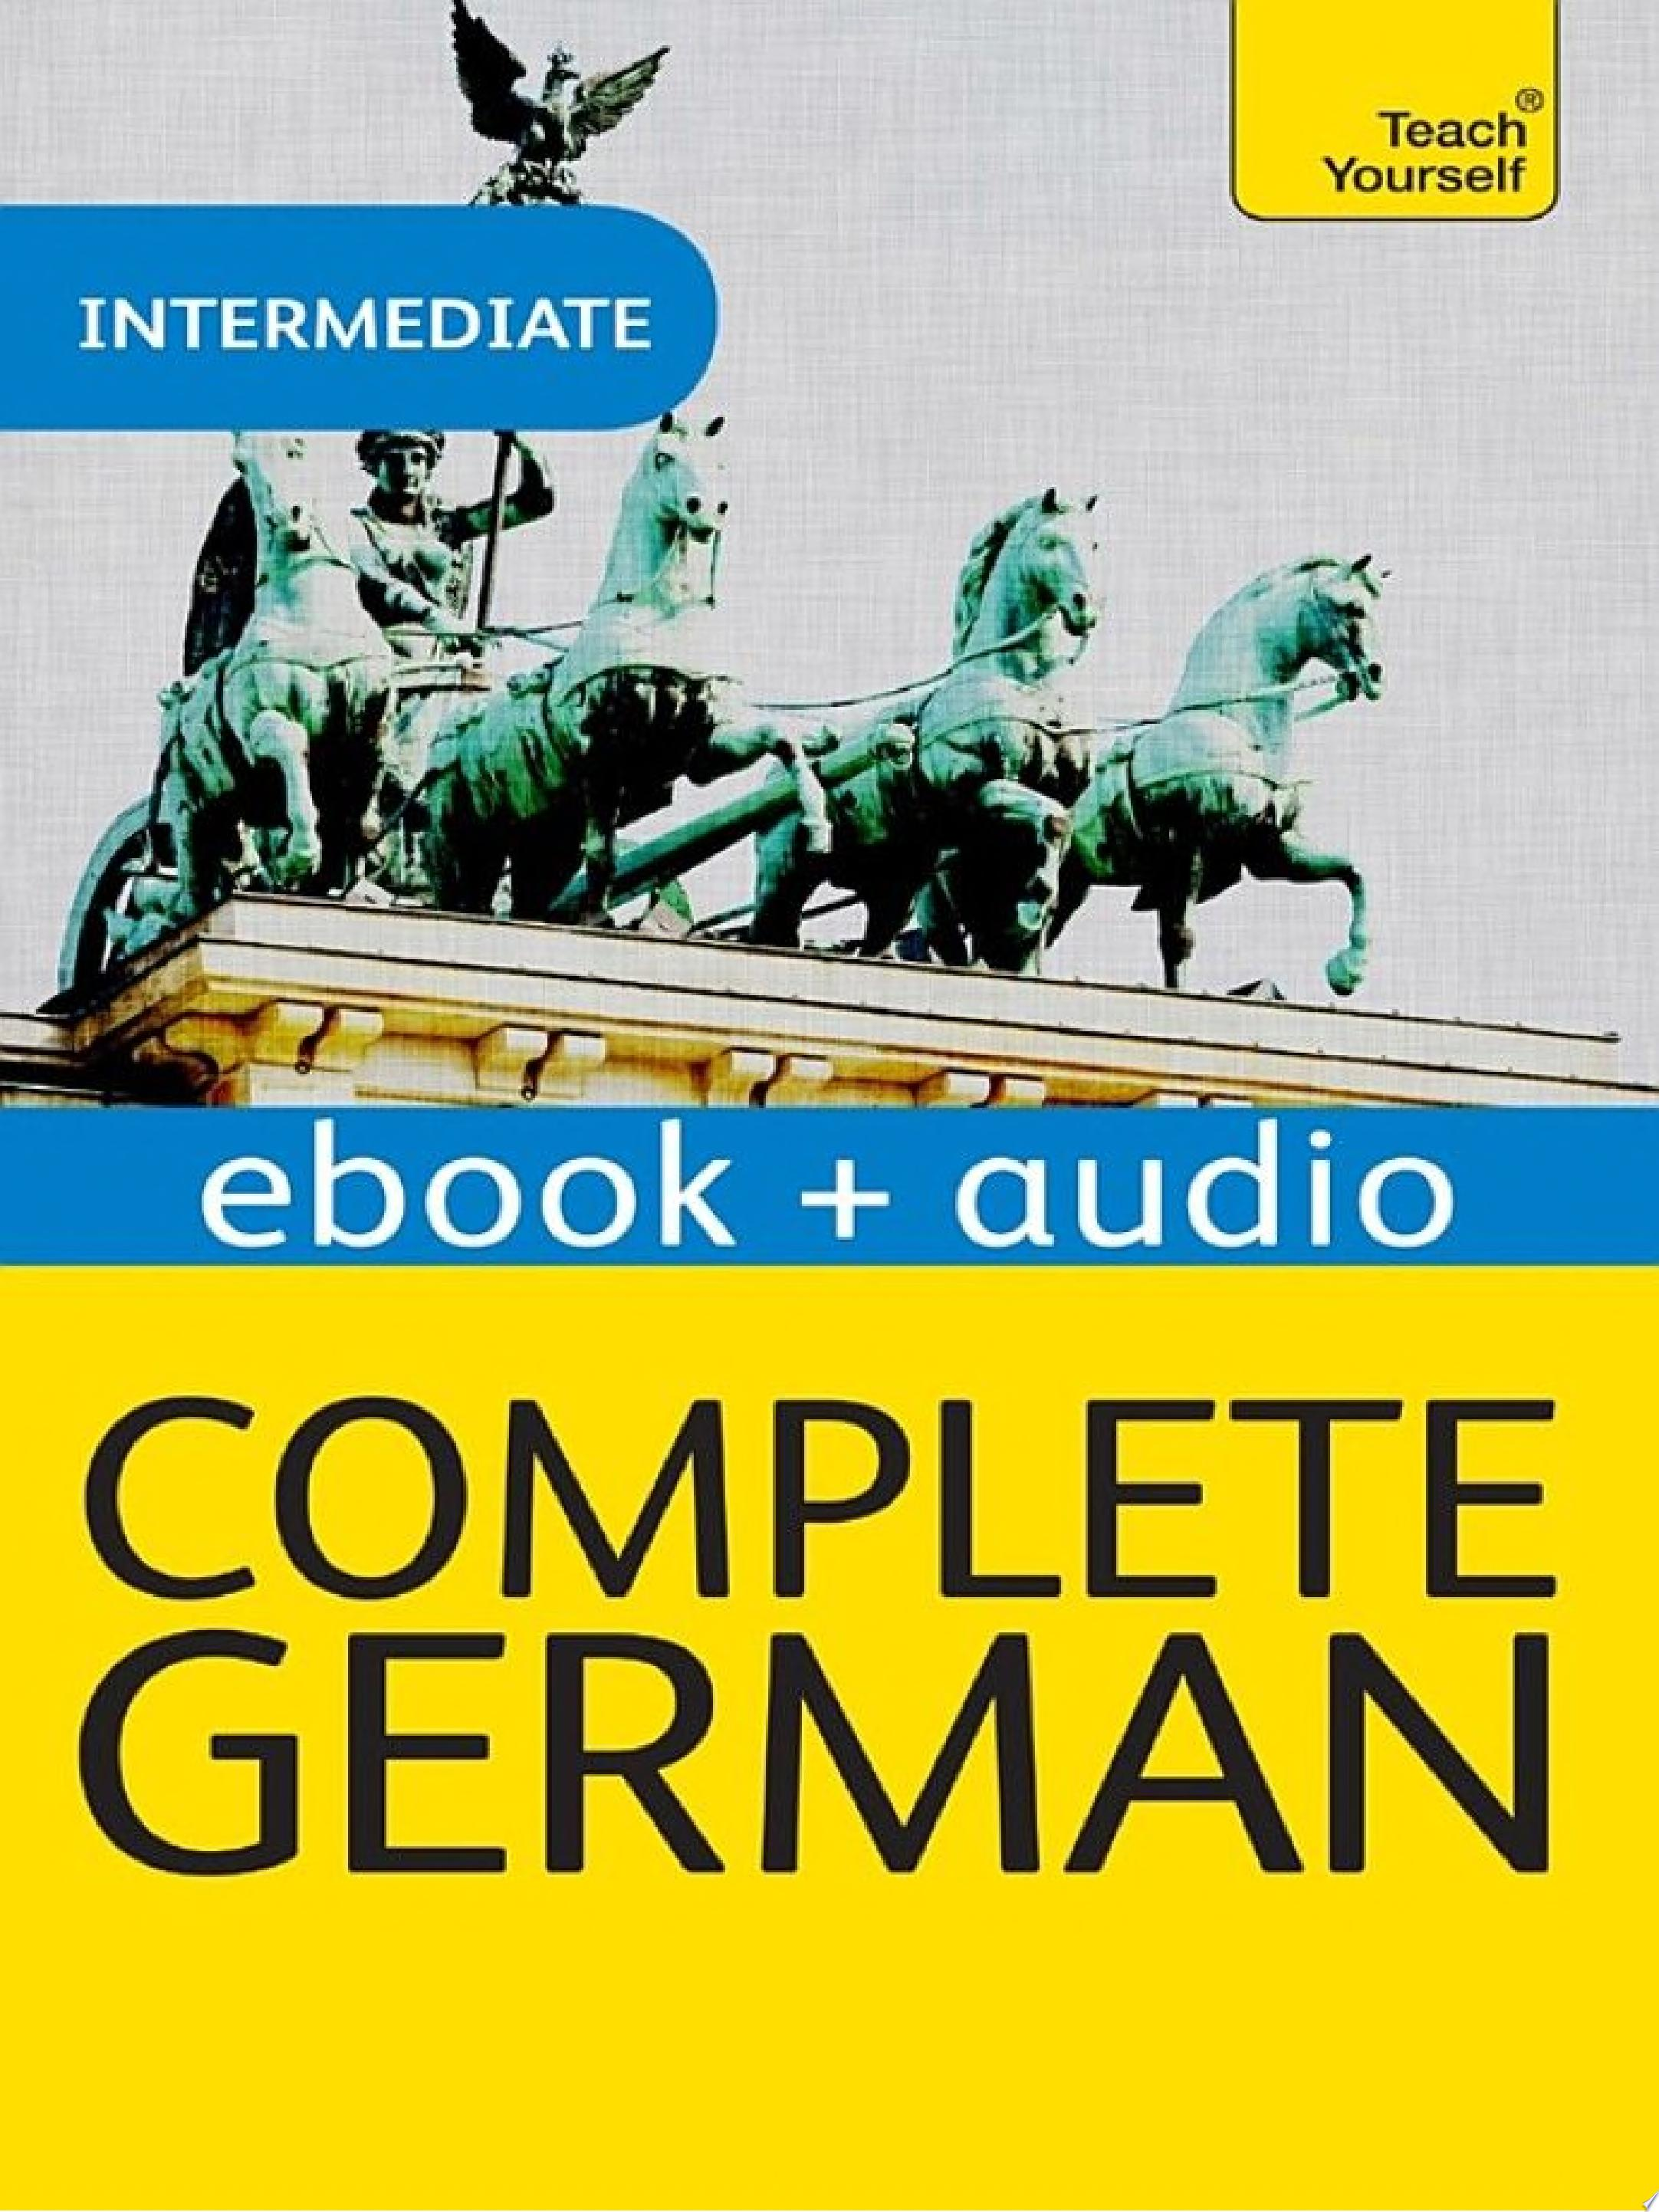 Complete German  Learn German with Teach Yourself